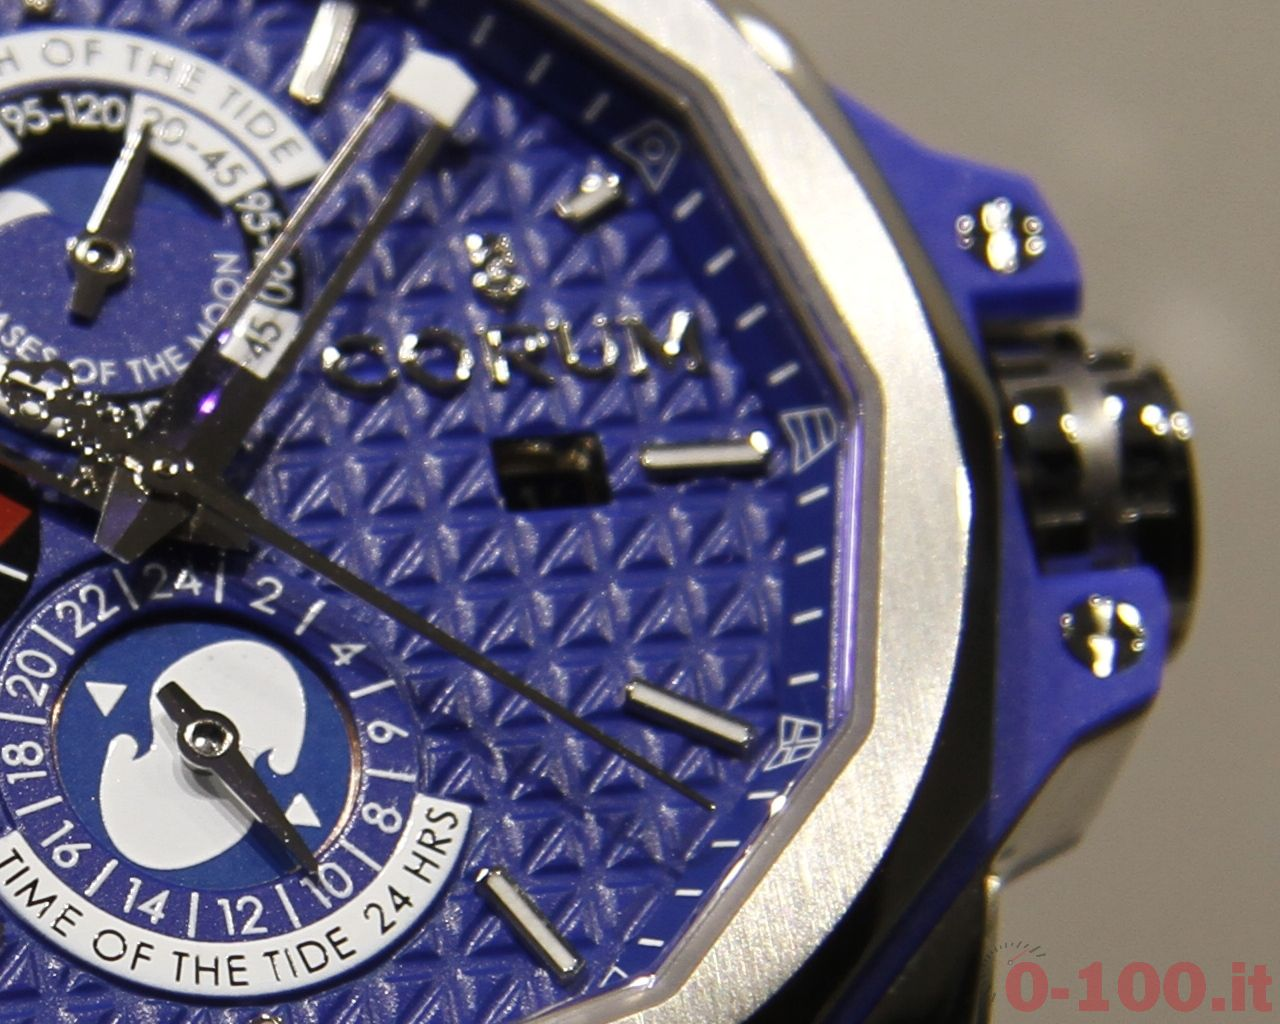 Baselworld_2014_Corum-Admirals-Cup-AC-One-45_Tides_0-1004